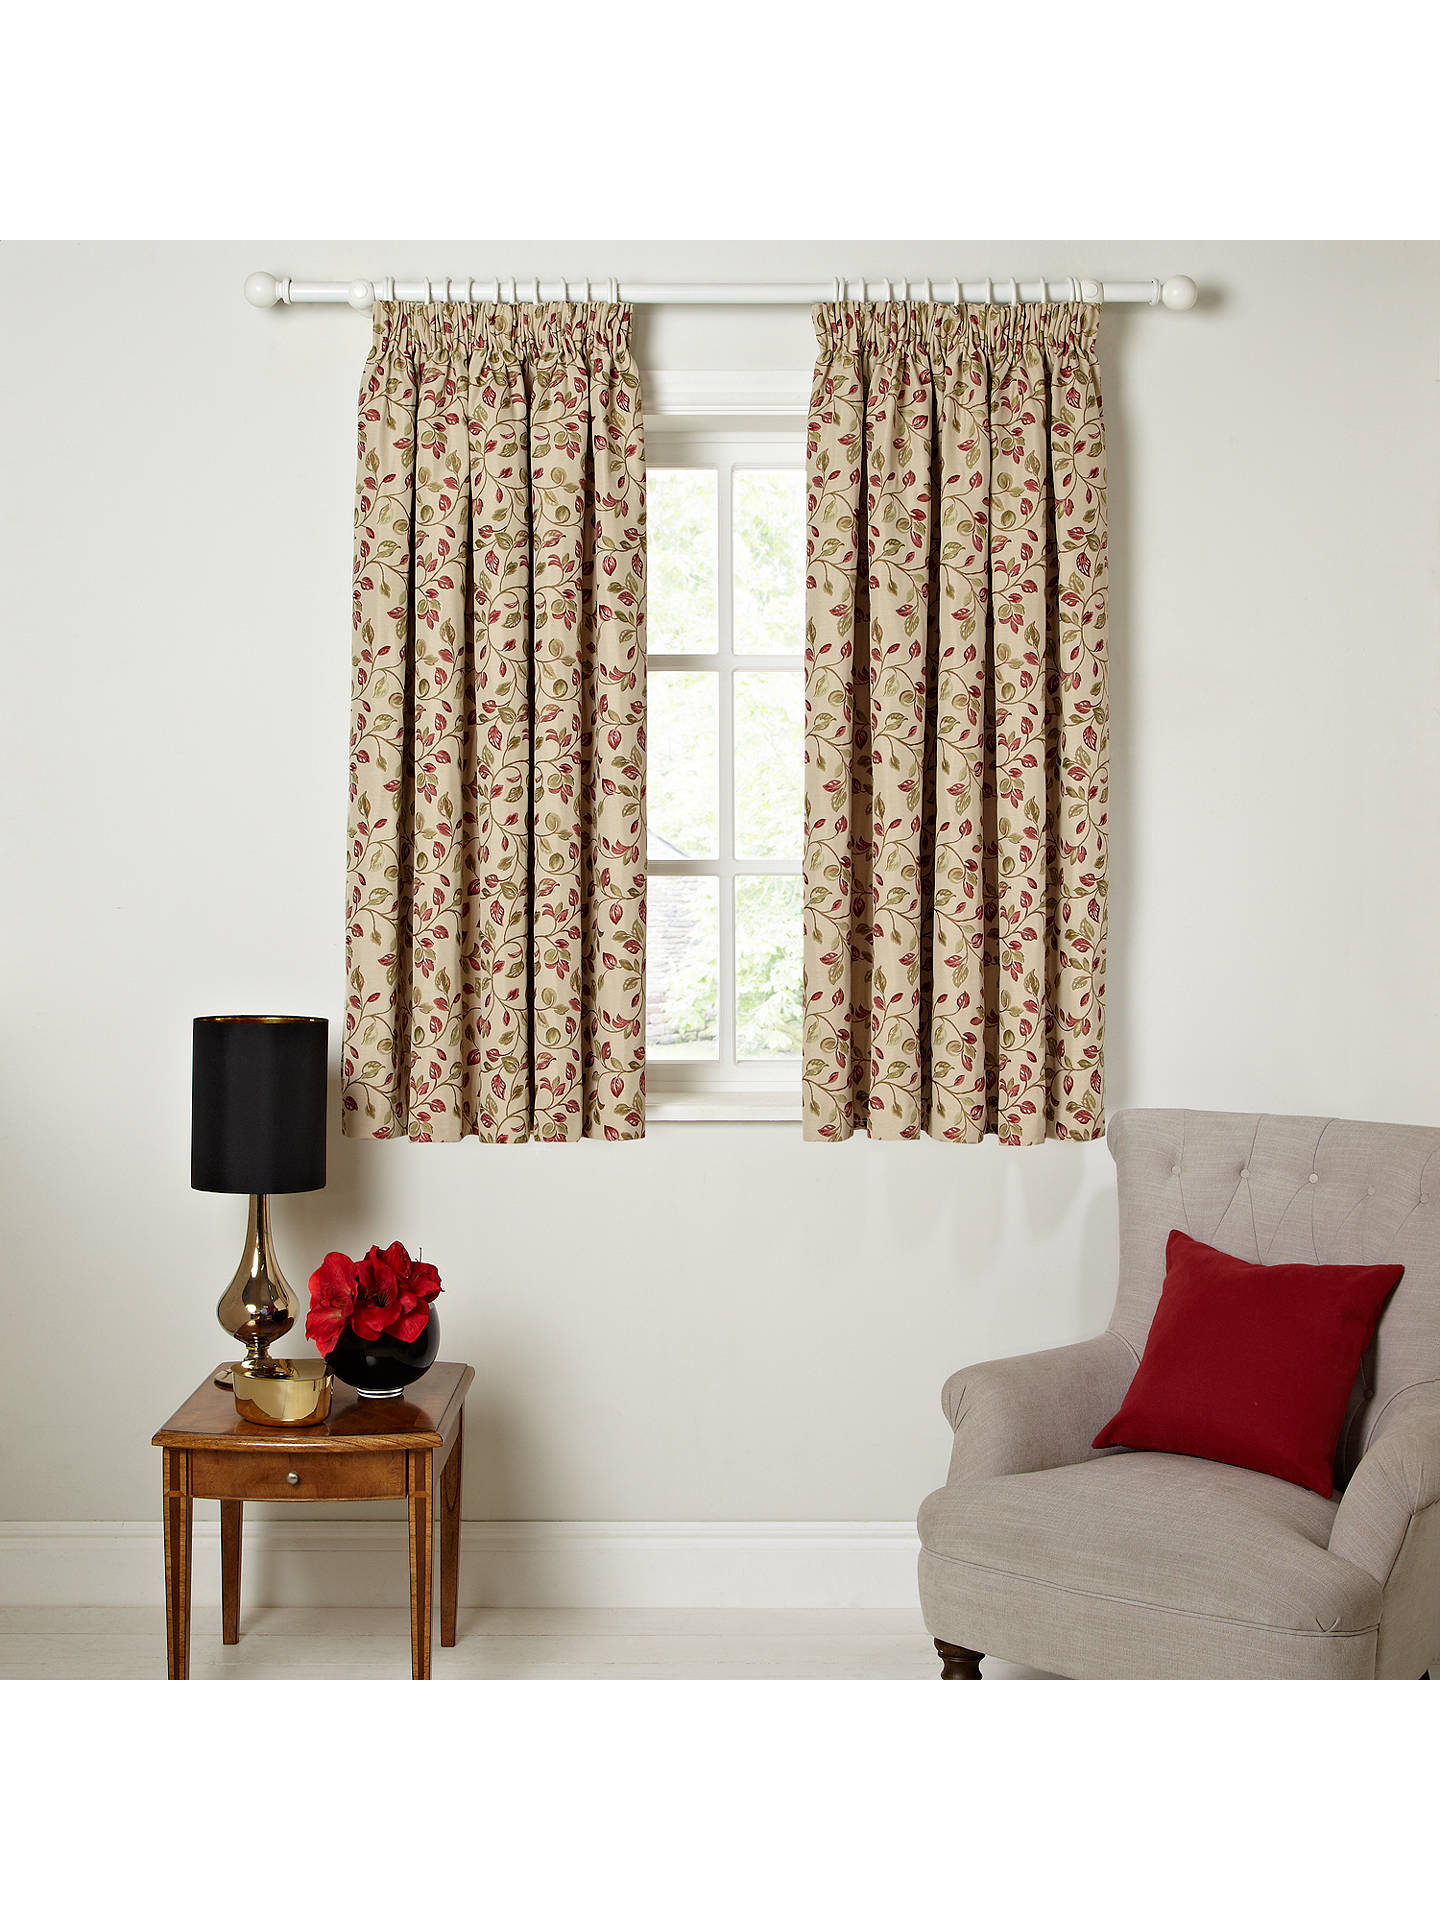 4711bdee157d ... Buy John Lewis & Partners Sherwood Pair Lined Pencil Pleat Curtains,  Red / Green, ...